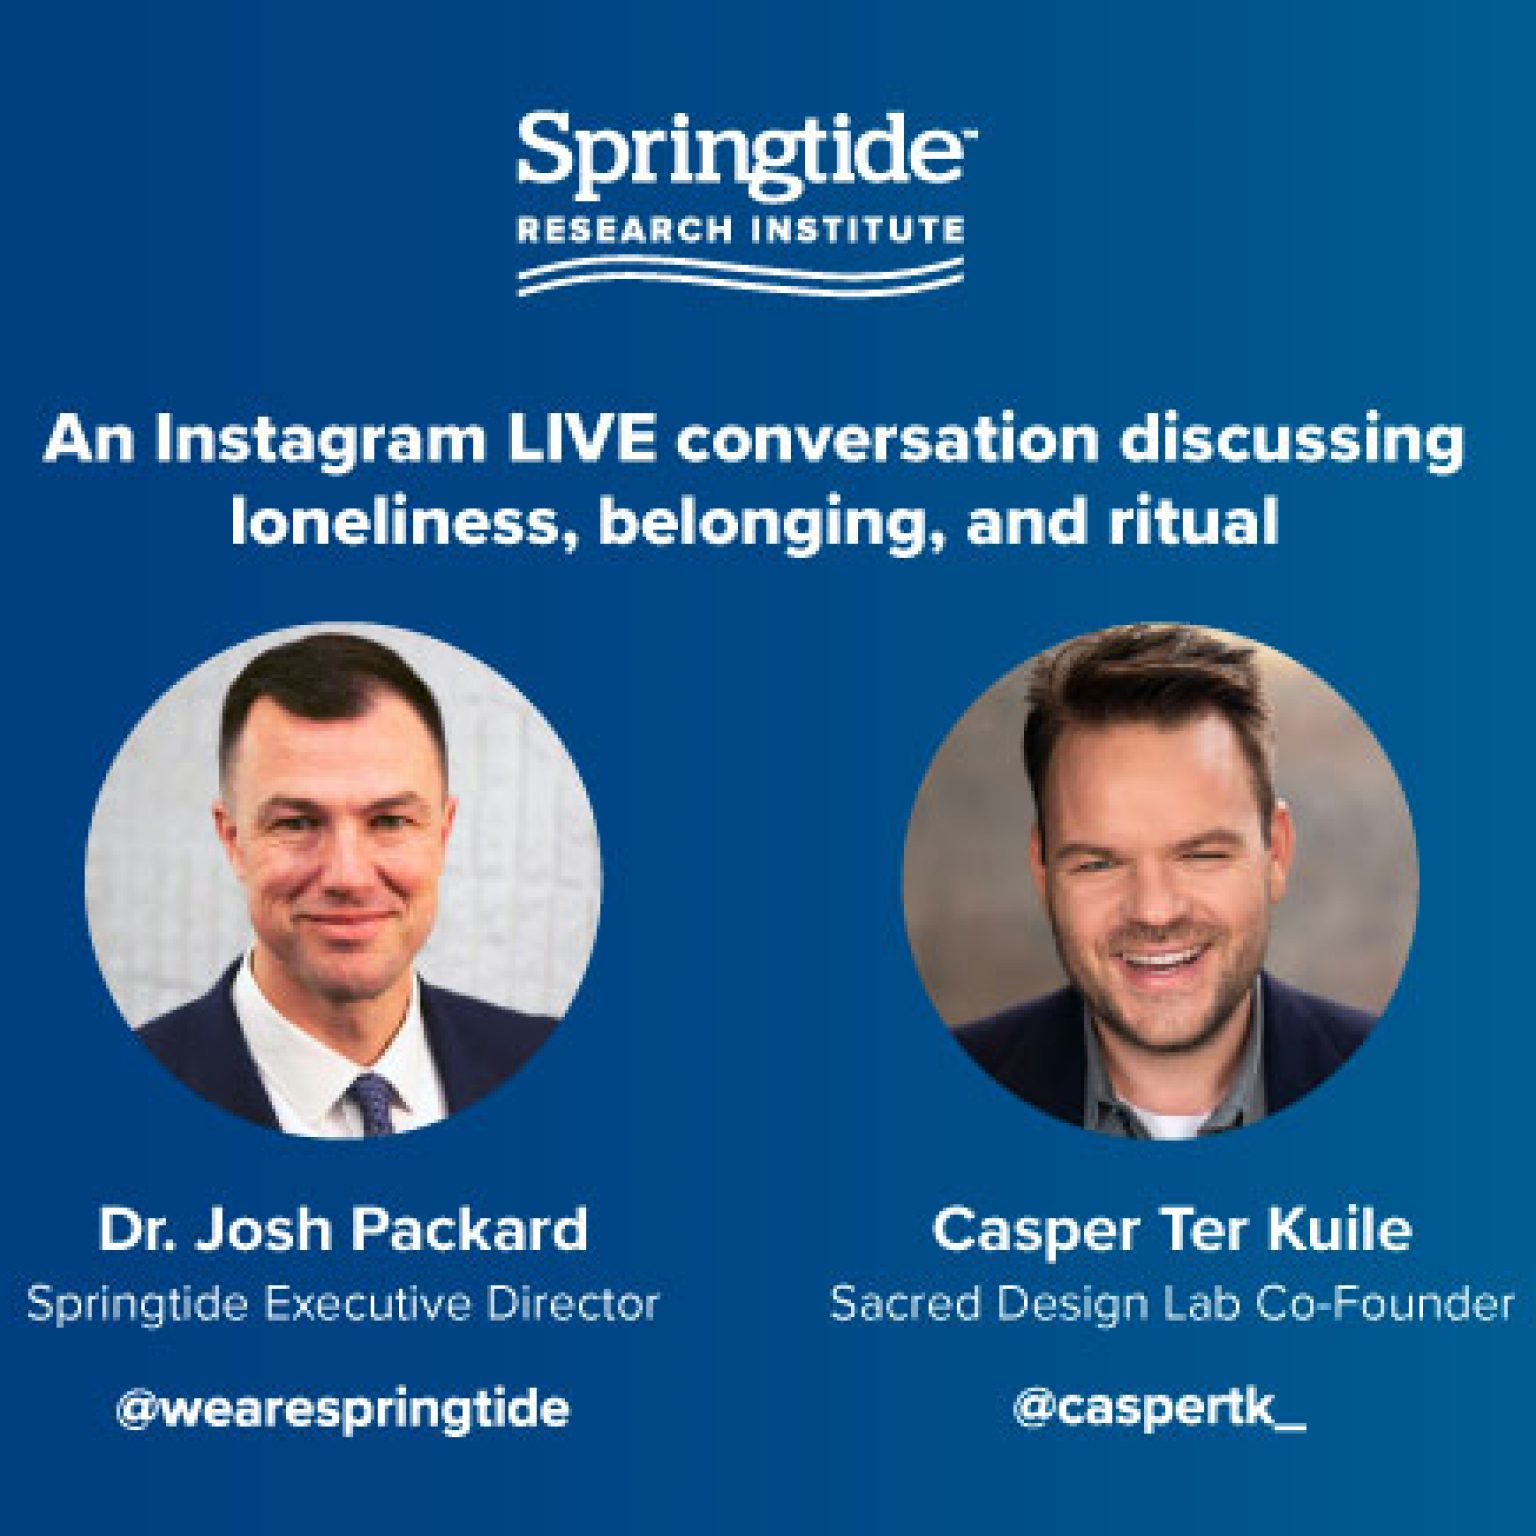 Instagram Live Conversation with Dr. Josh Packard and Casper ter Kuile